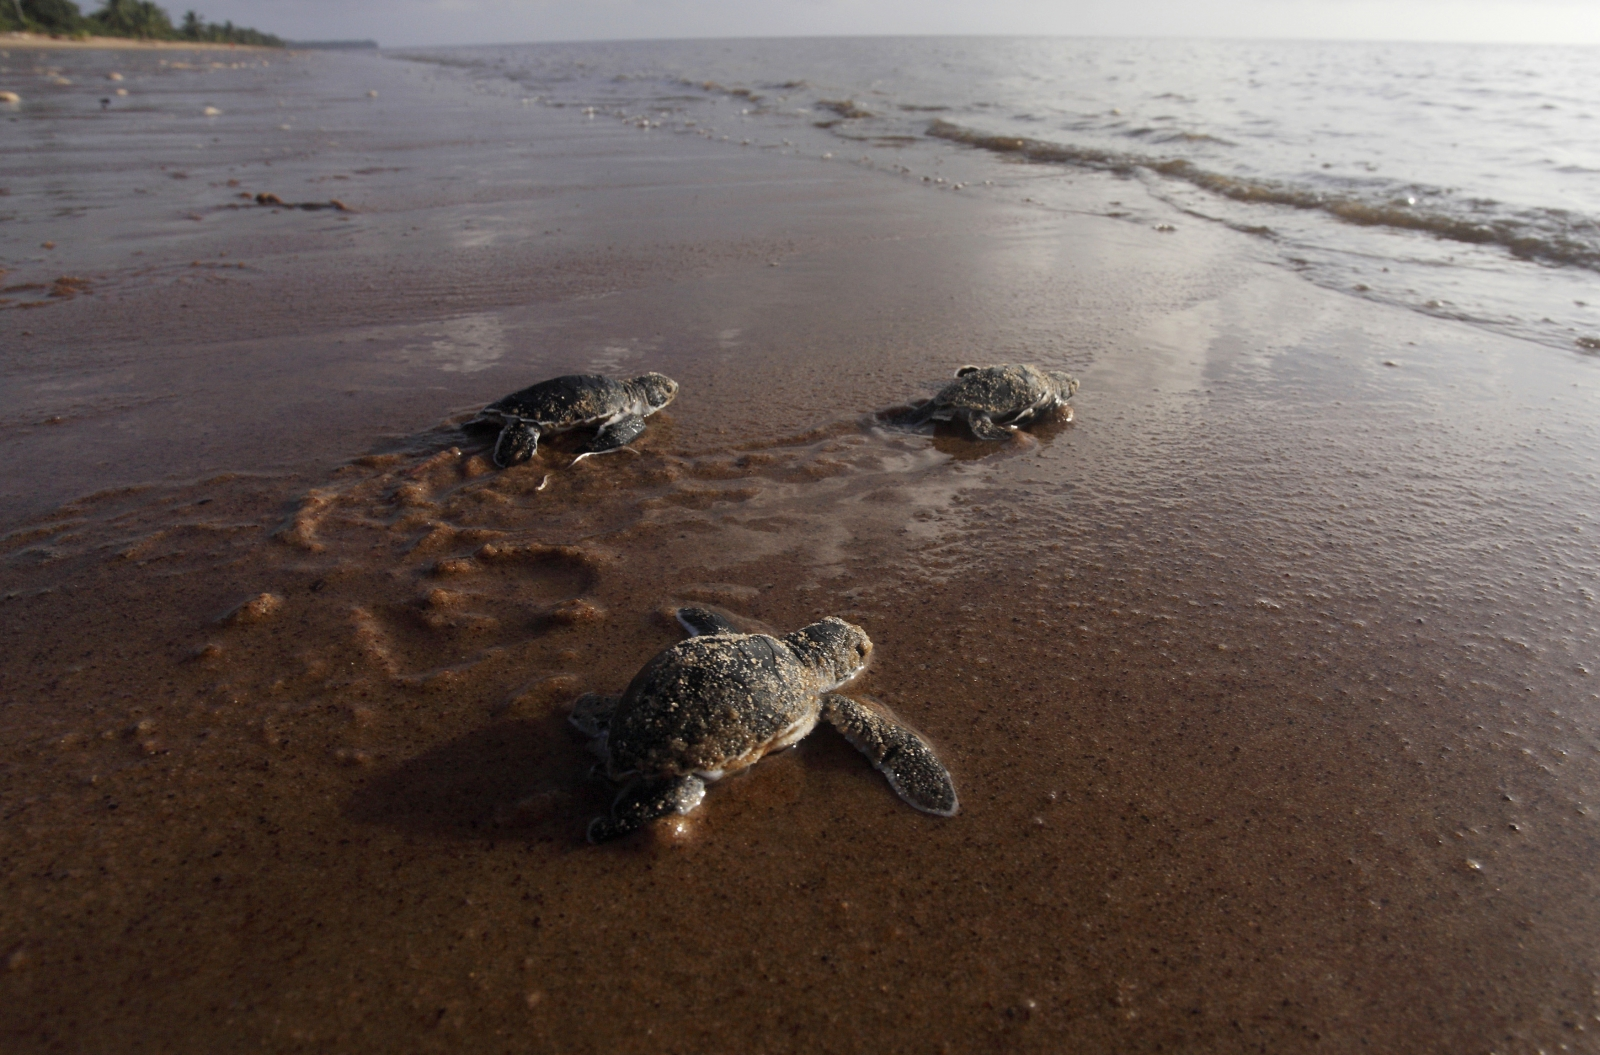 Rising temperature affecting the hatching process of green sea turtles: researchers said